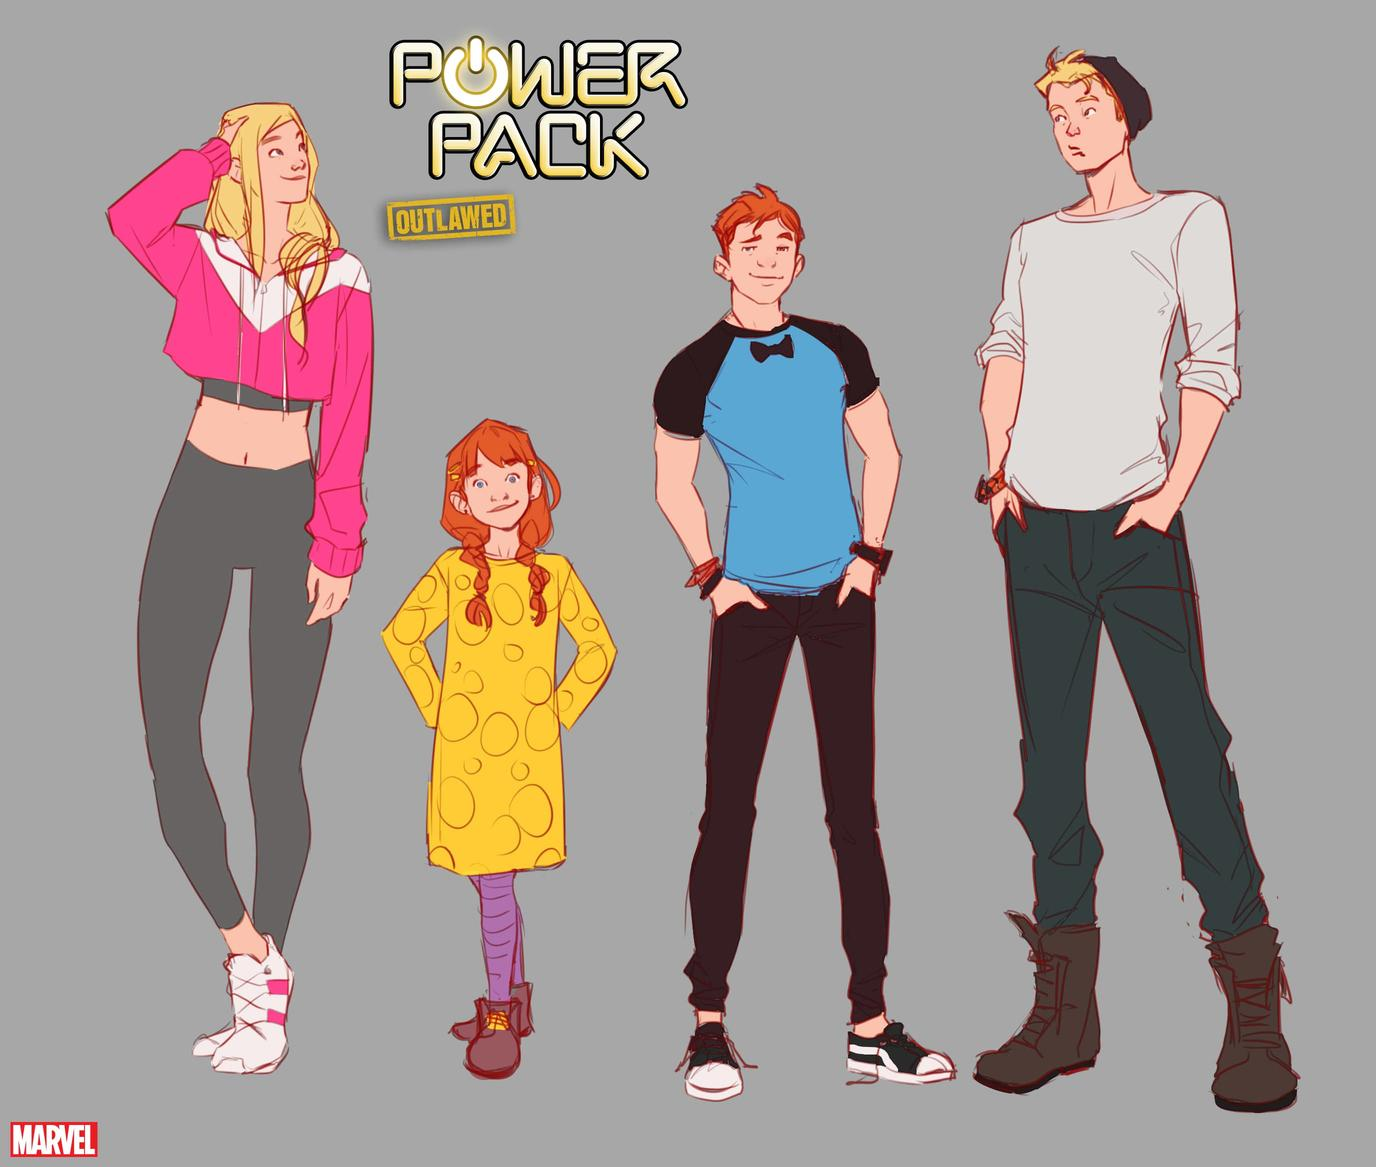 Power Pack character designs